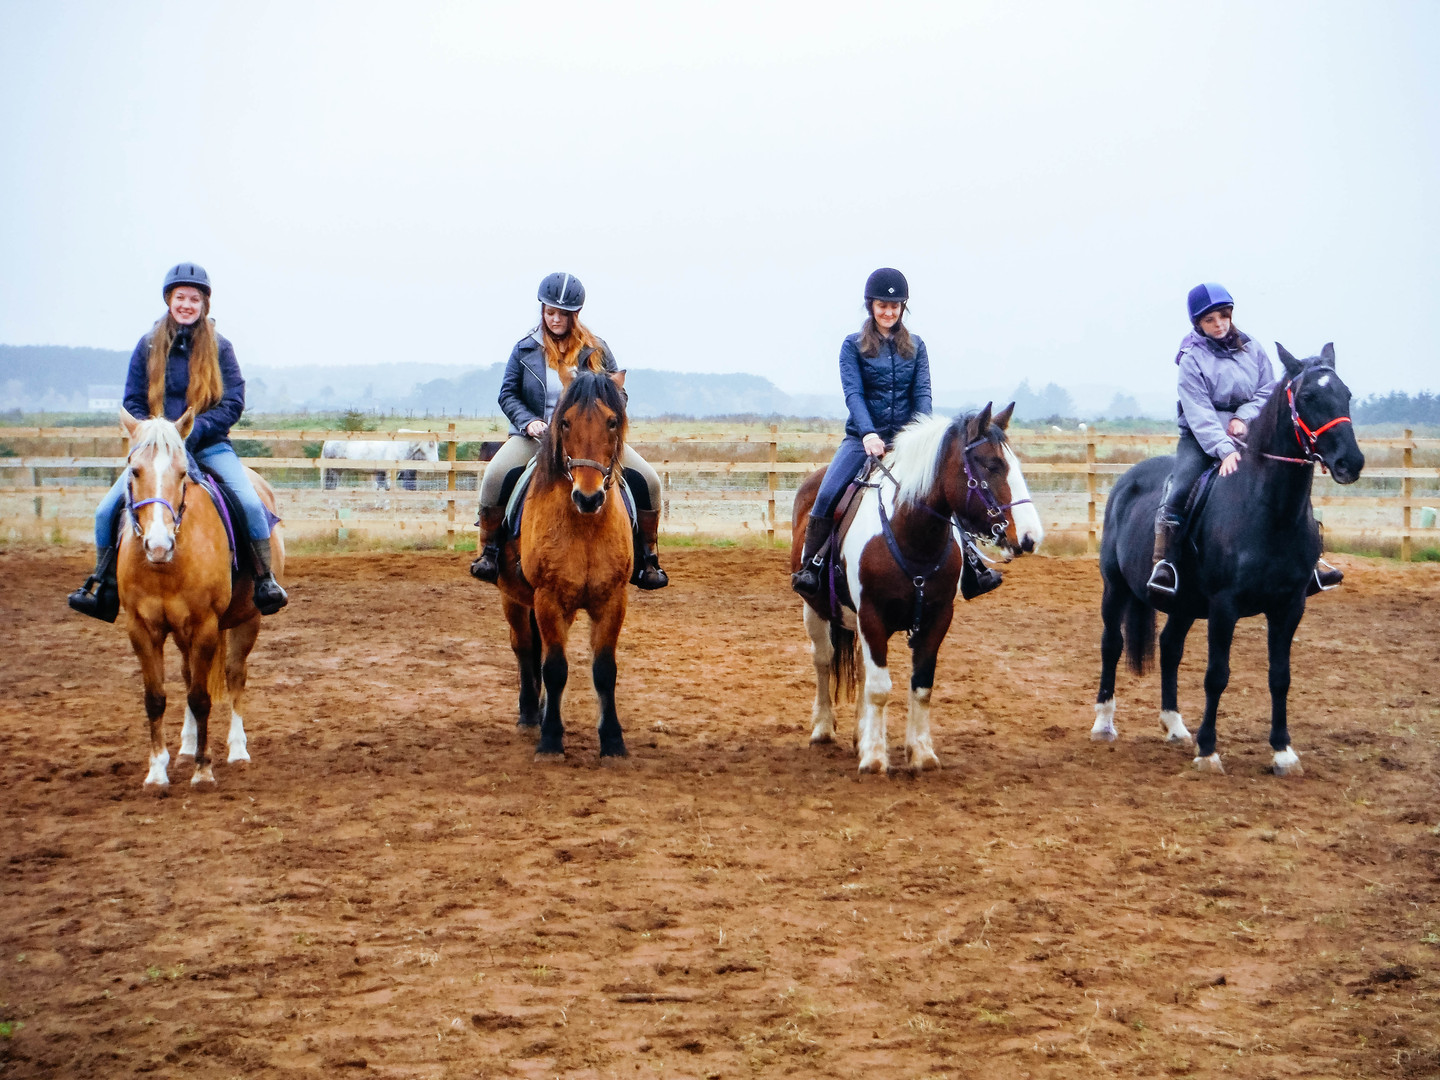 Riding lessons in the sand school